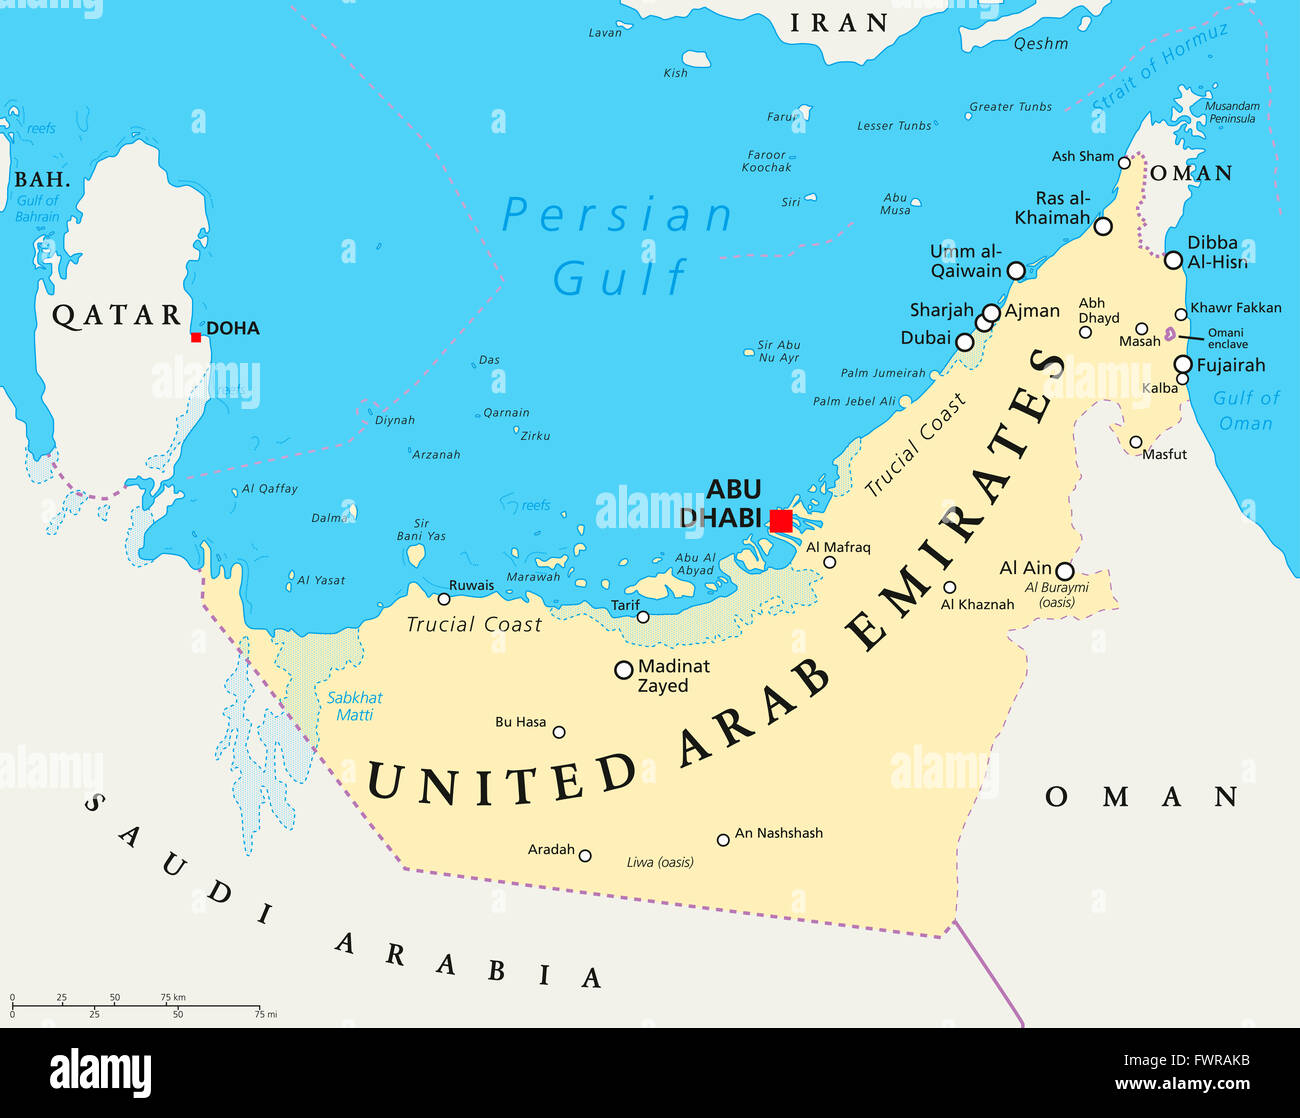 uae united arab emirates political map with capital abu dhabi national borders important cities